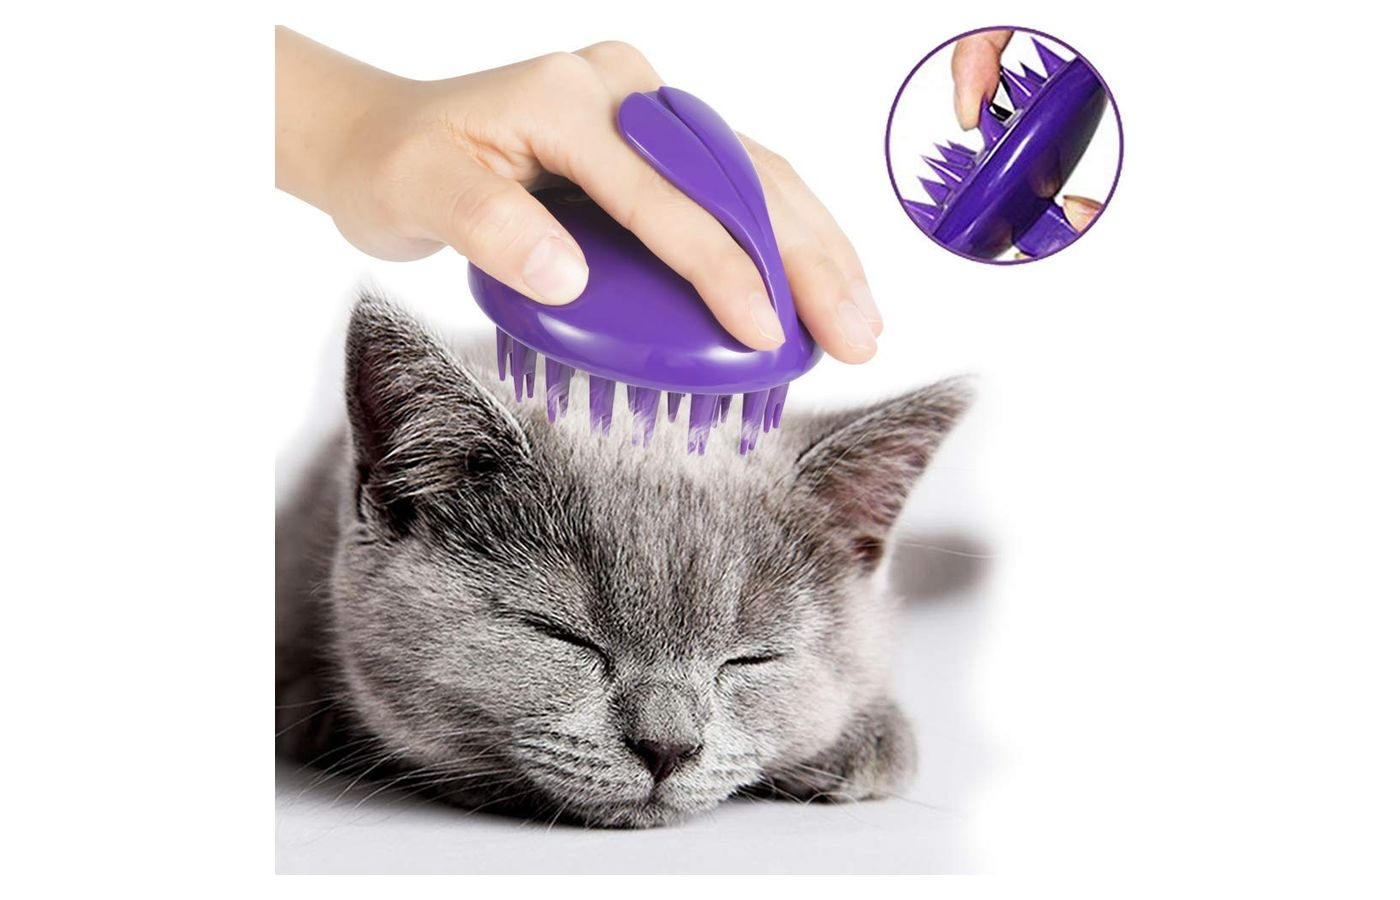 Celemoon Ultrasoft Cat Grooming Brush